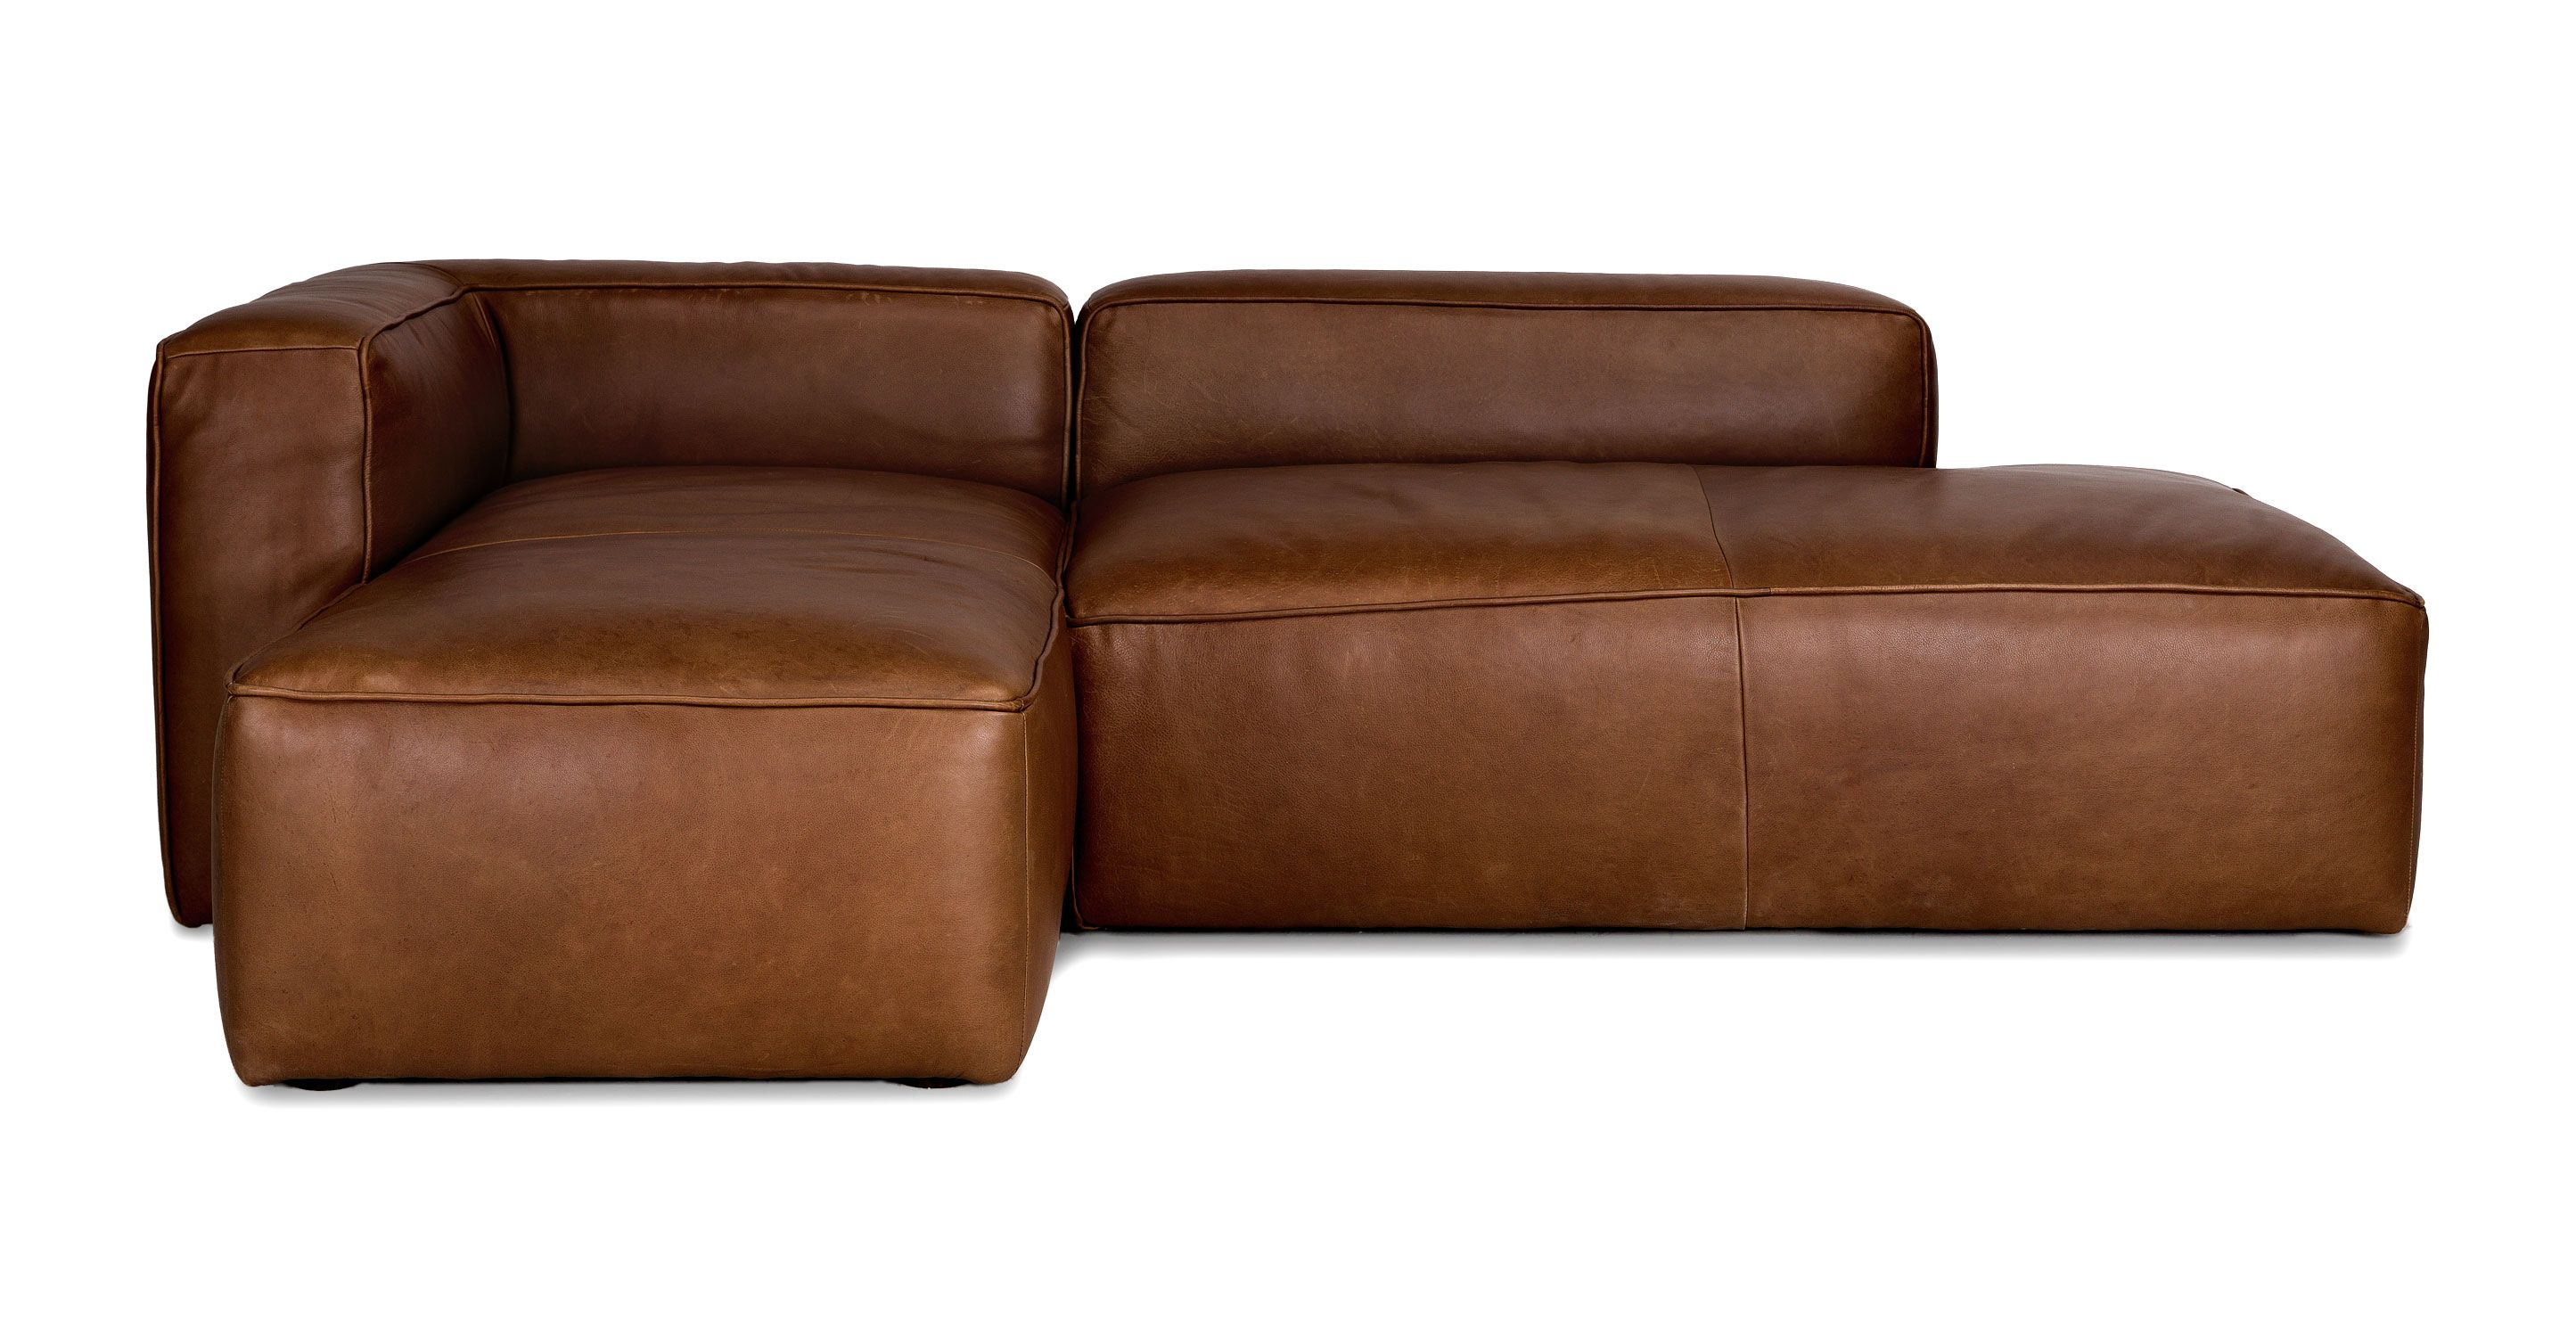 Mello Taos Brown Left Sectional Sofas Article Modern